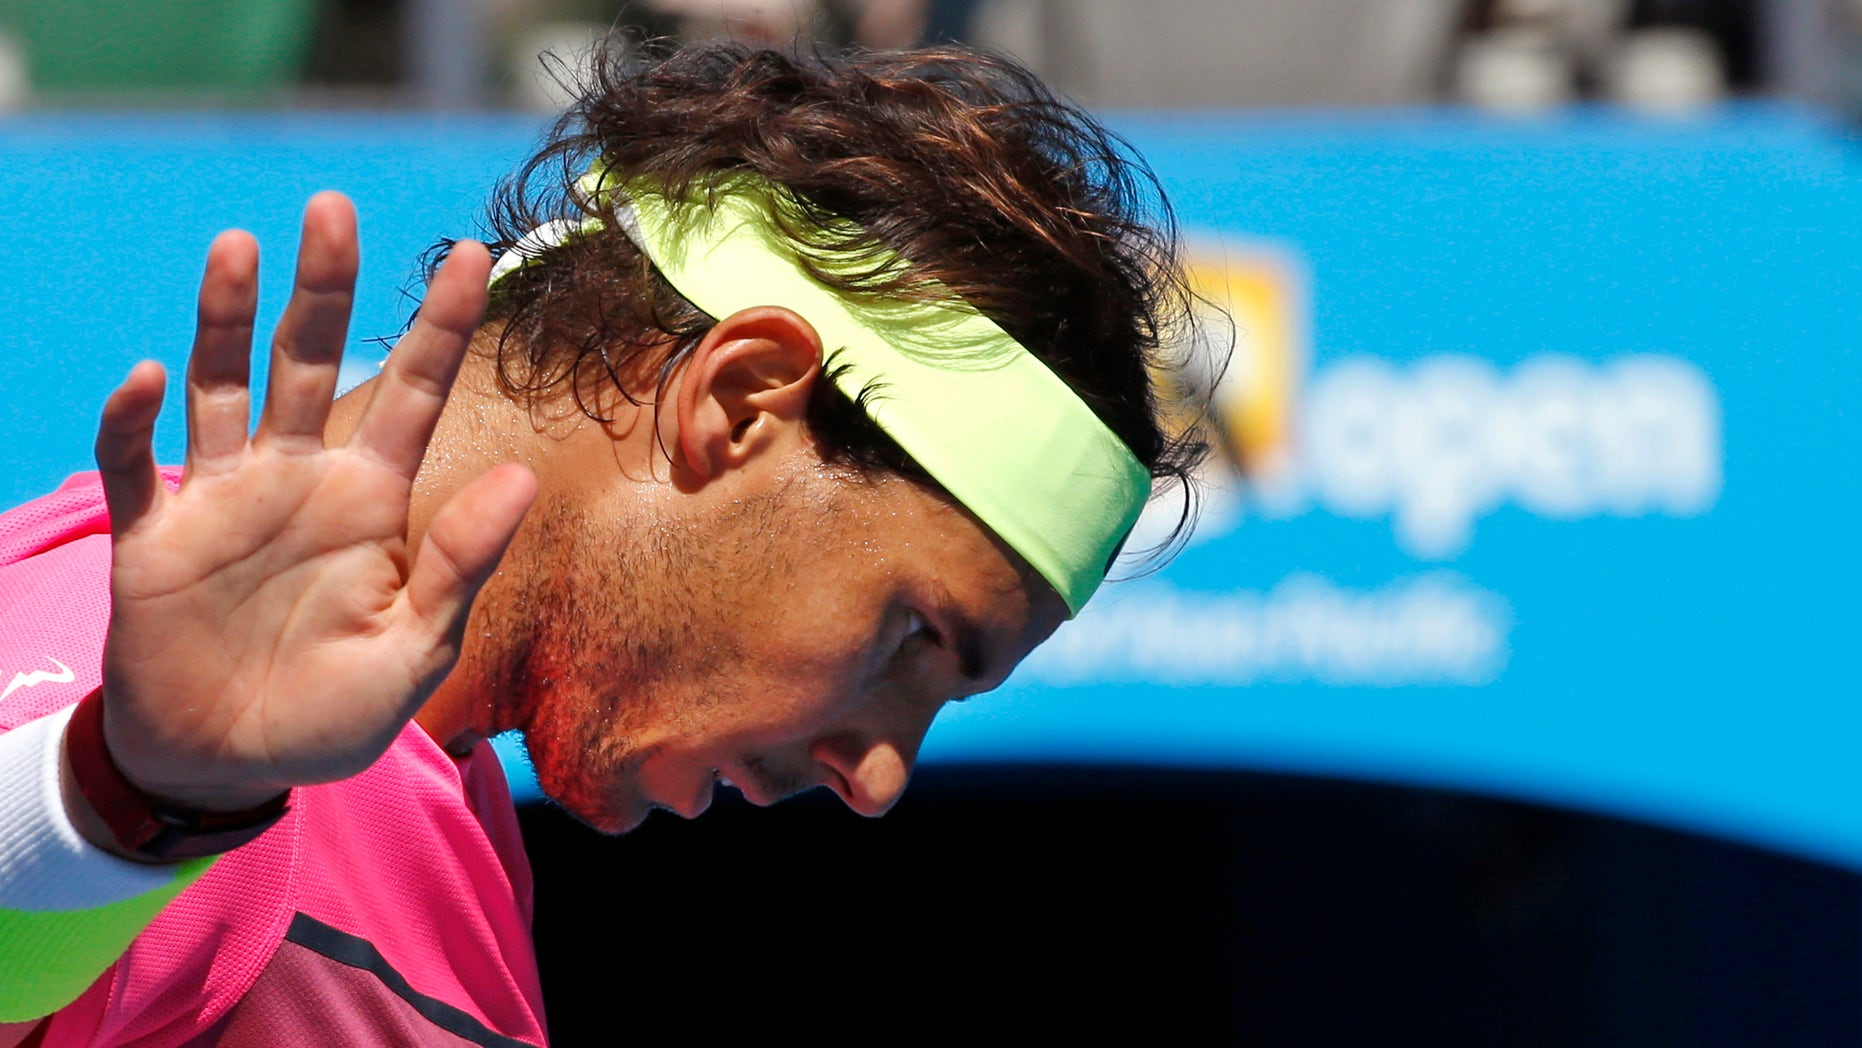 Rafael Nadal of Spain gestures as he plays Kevin Anderson of South Africa during their fourth round match at the Australian Open tennis championship in Melbourne, Australia, Sunday, Jan. 25, 2015. (AP Photo/Vincent Thian)